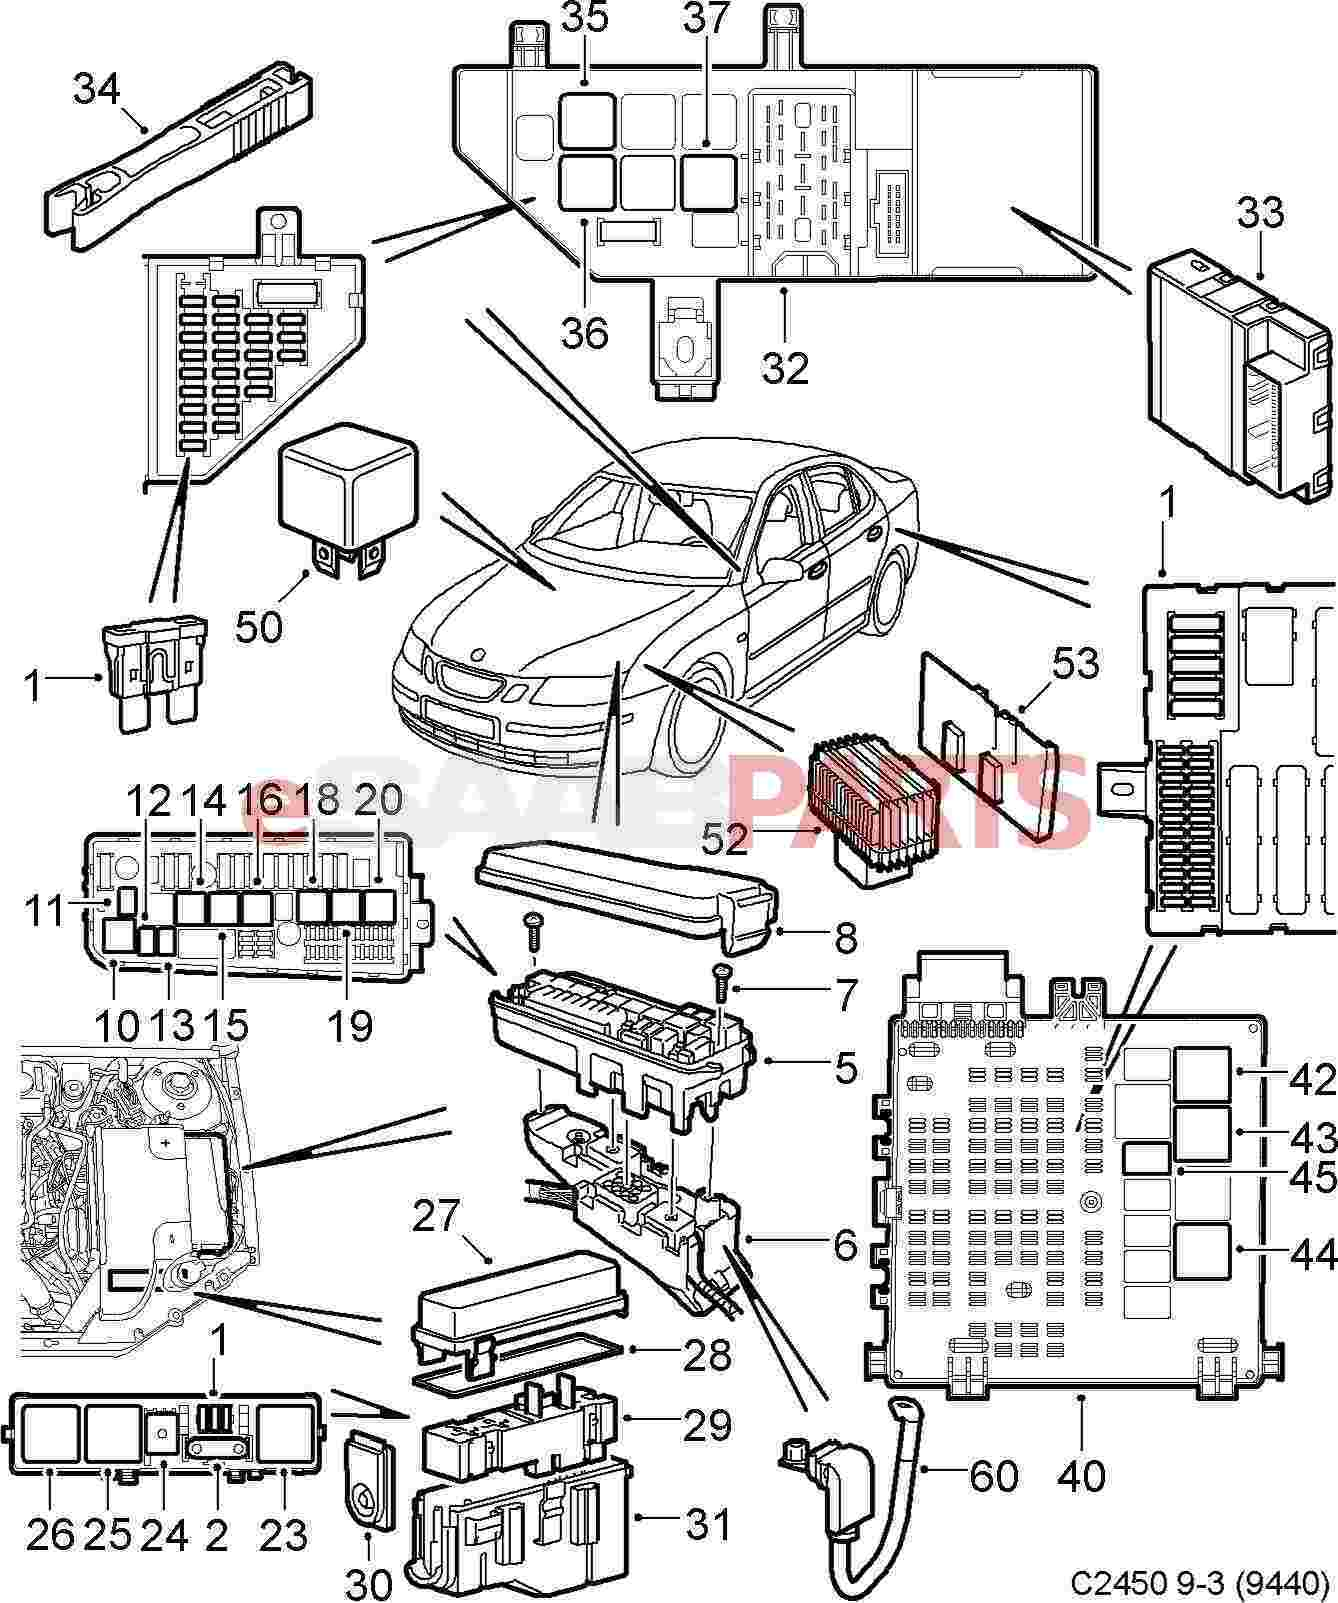 hight resolution of esaabparts com saab 9 3 9440 electrical parts relays fuses 2005 saab 9 3 convertible fuse diagram